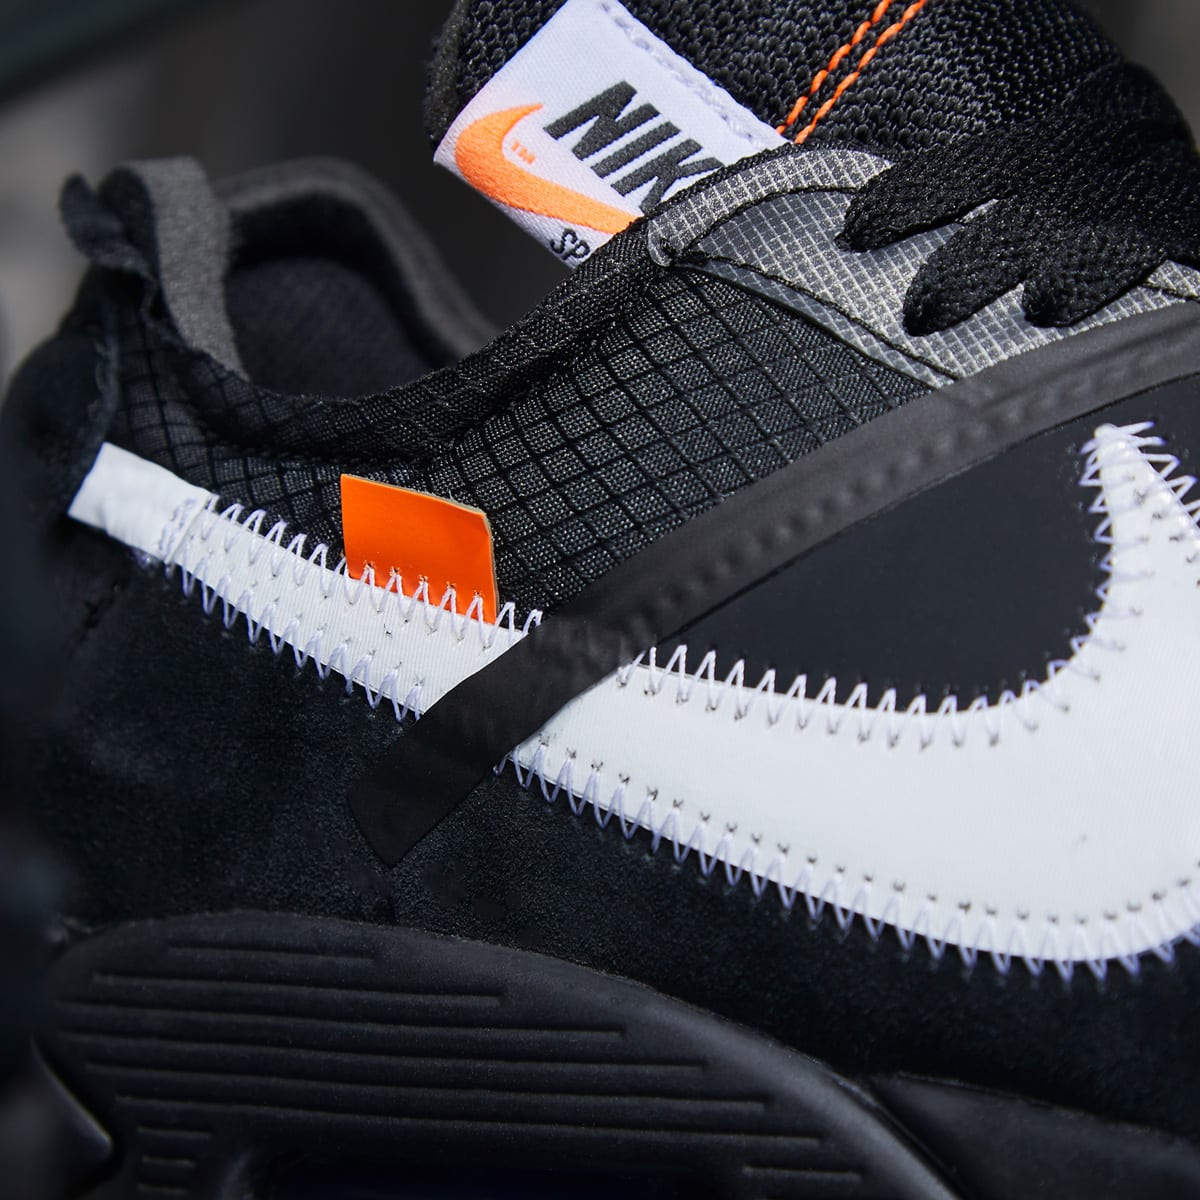 online store 2410f 32166 The Ten : Nike Air Max 90 x Virgil Abloh (Black & White)